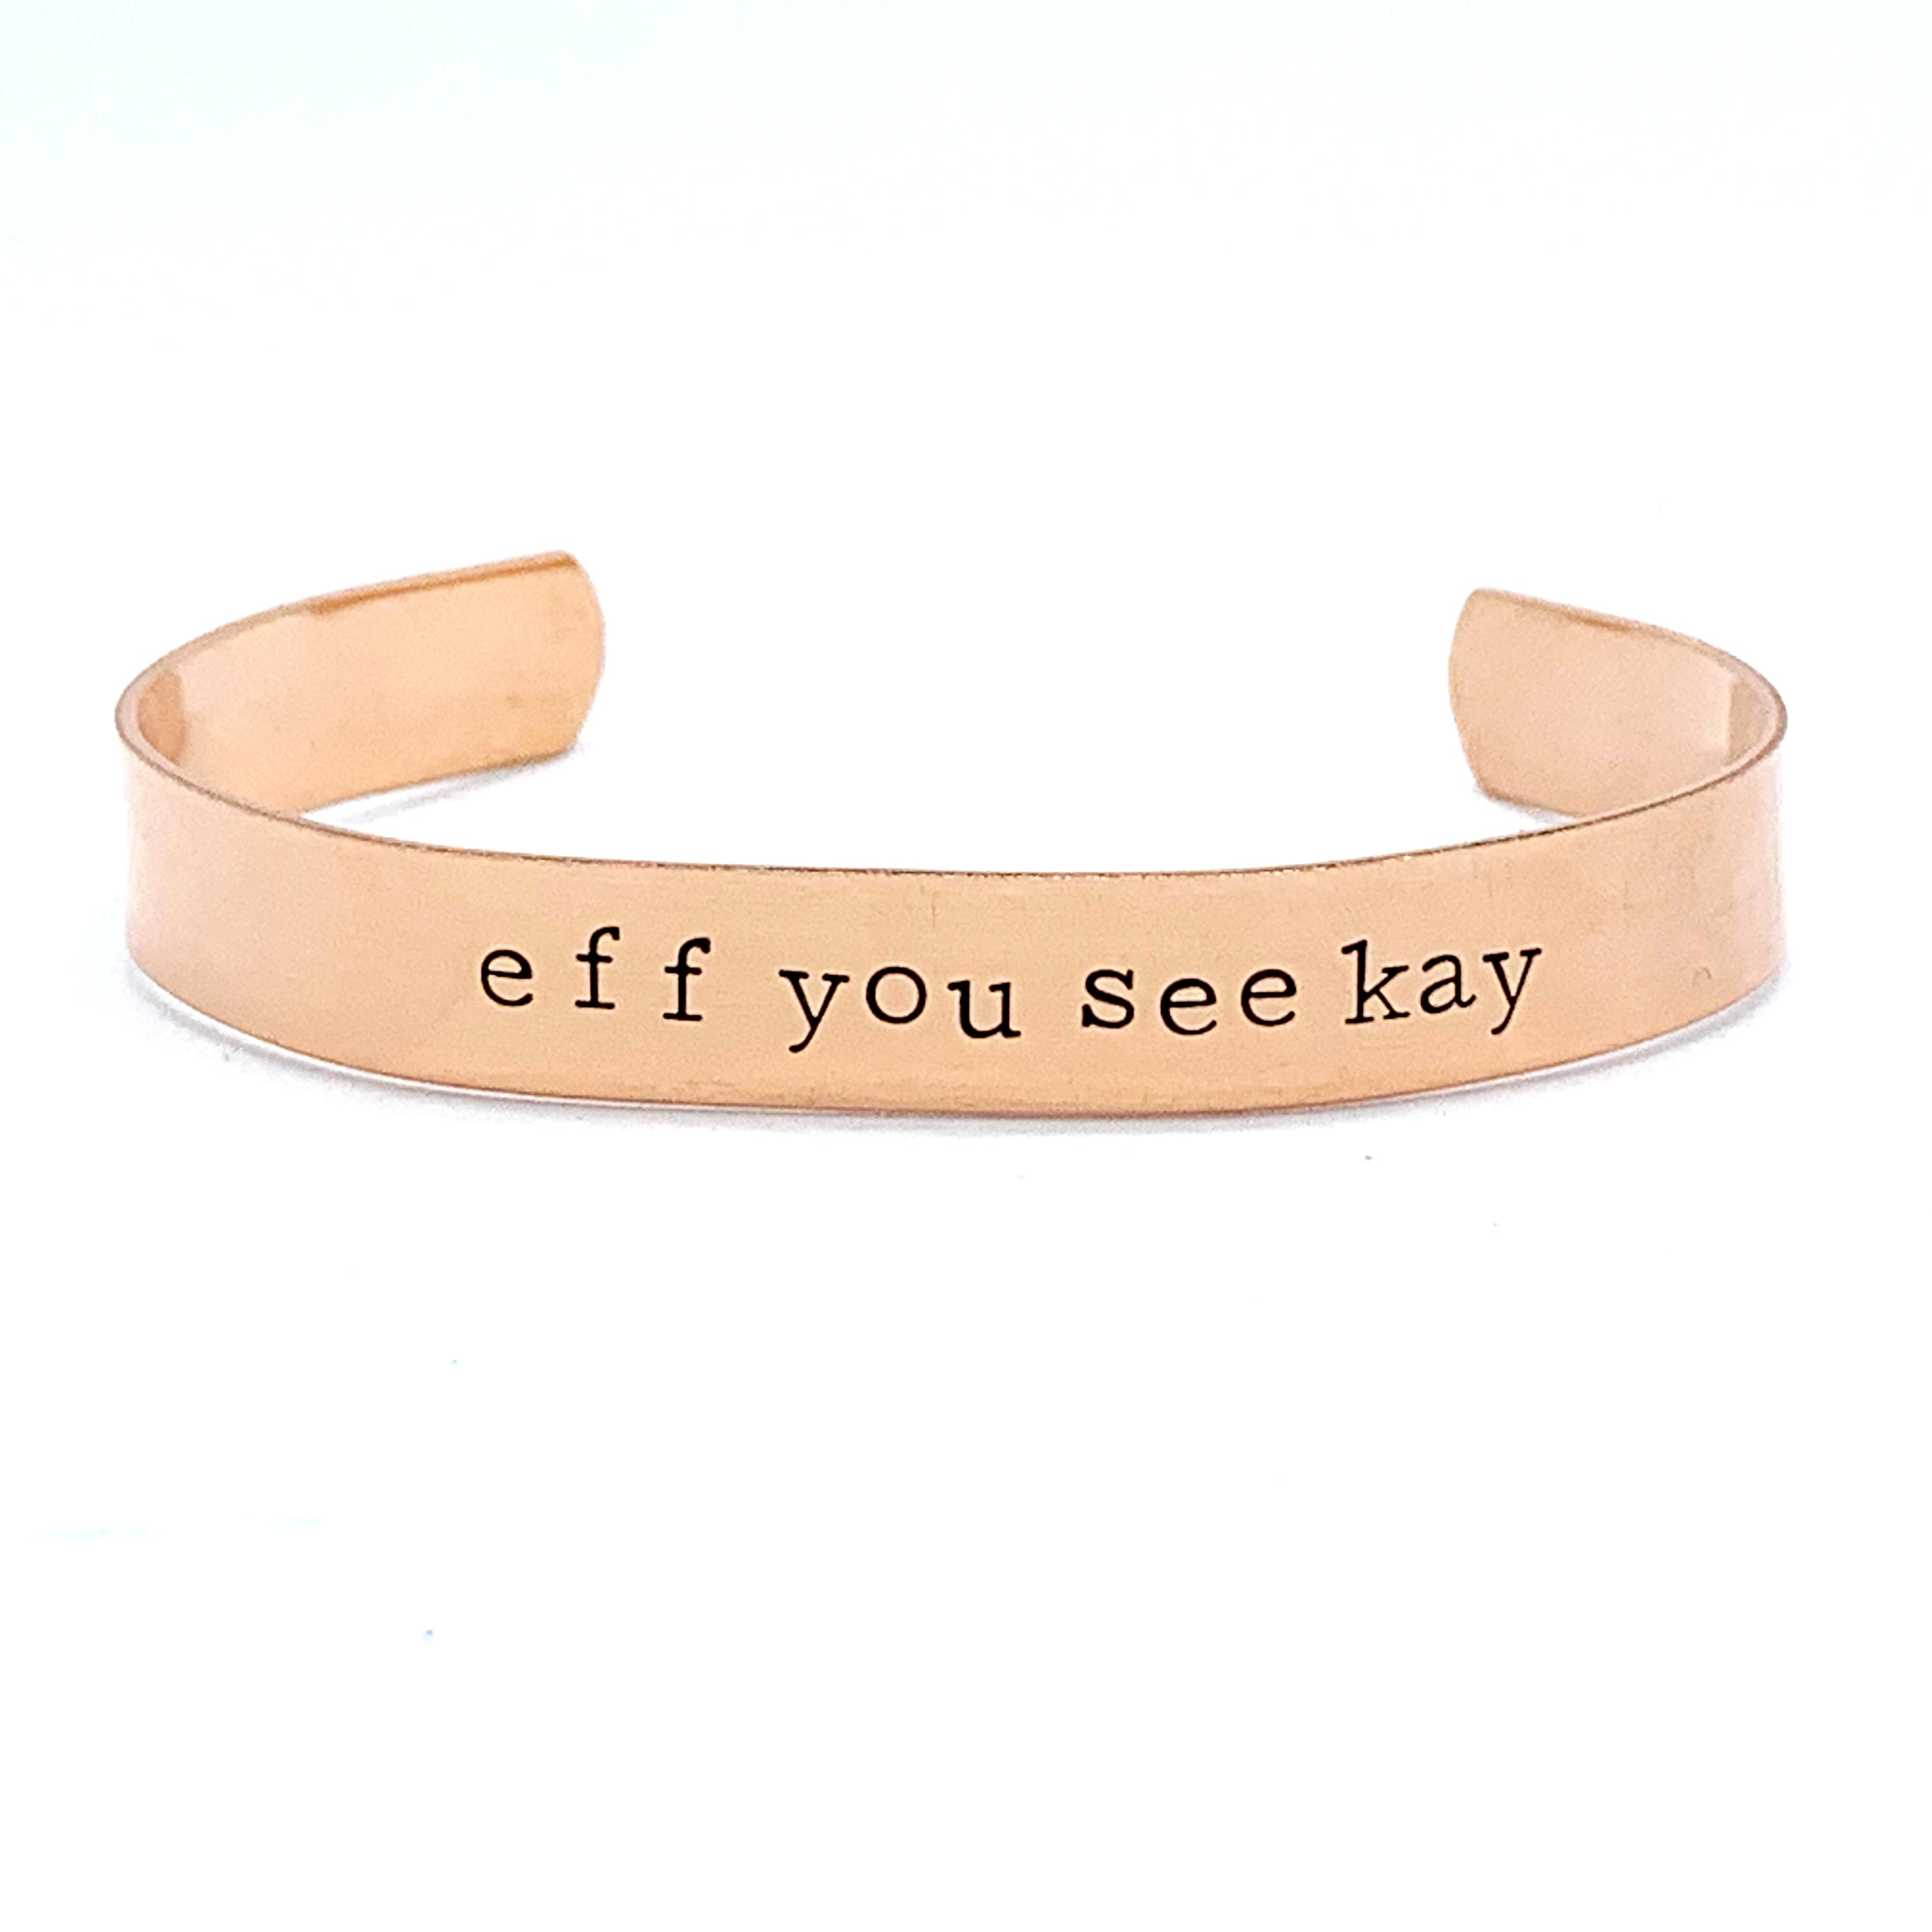 ⅜ inch Copper Cuff - eff you see kay